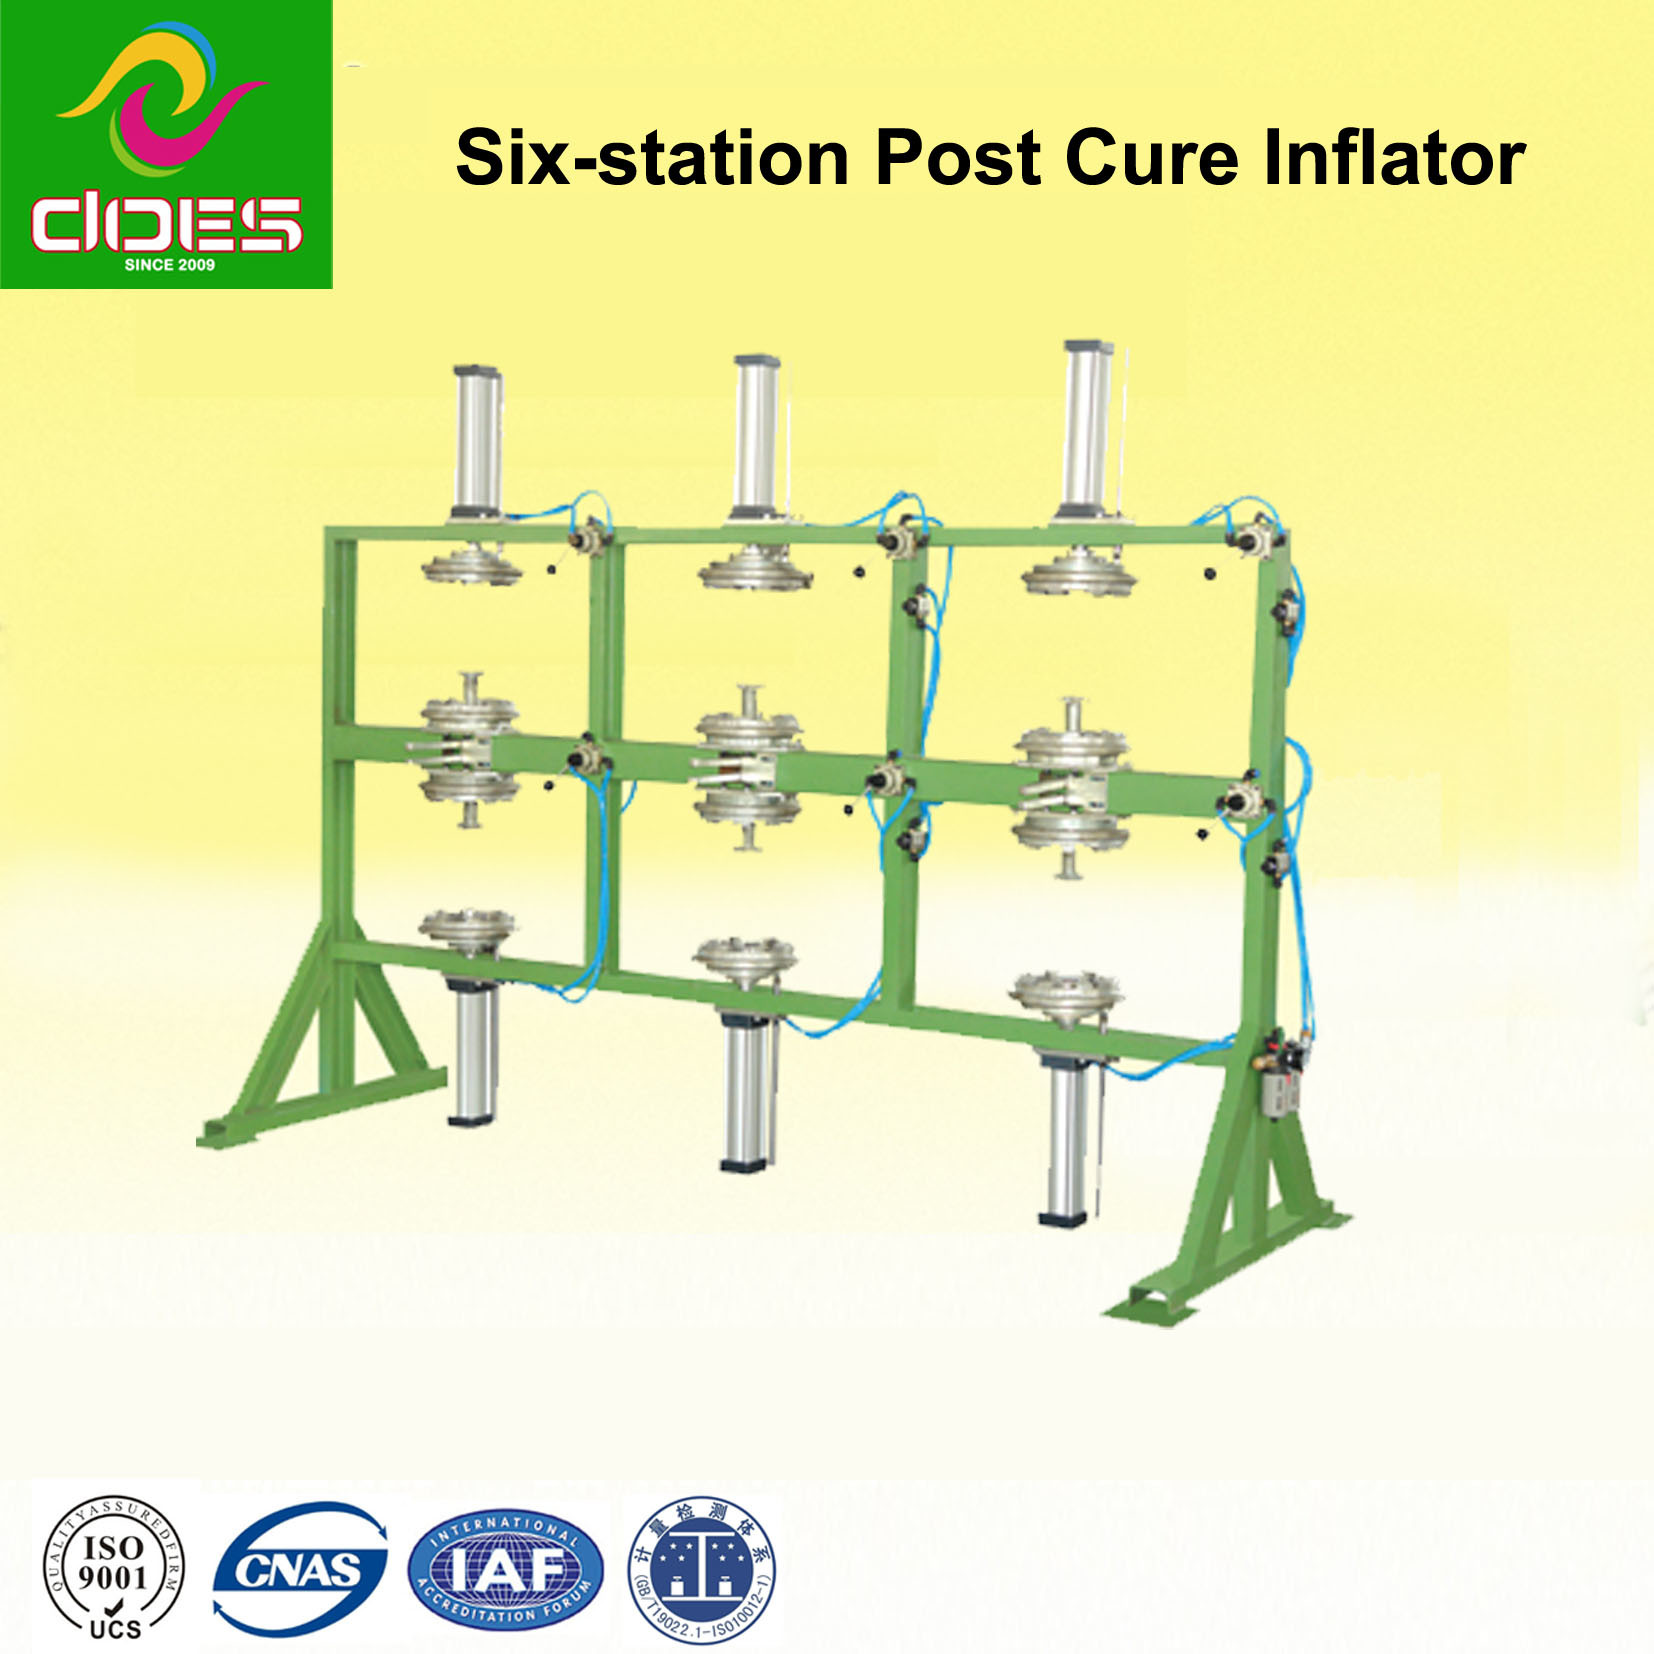 Six Station Post Cure Inflator